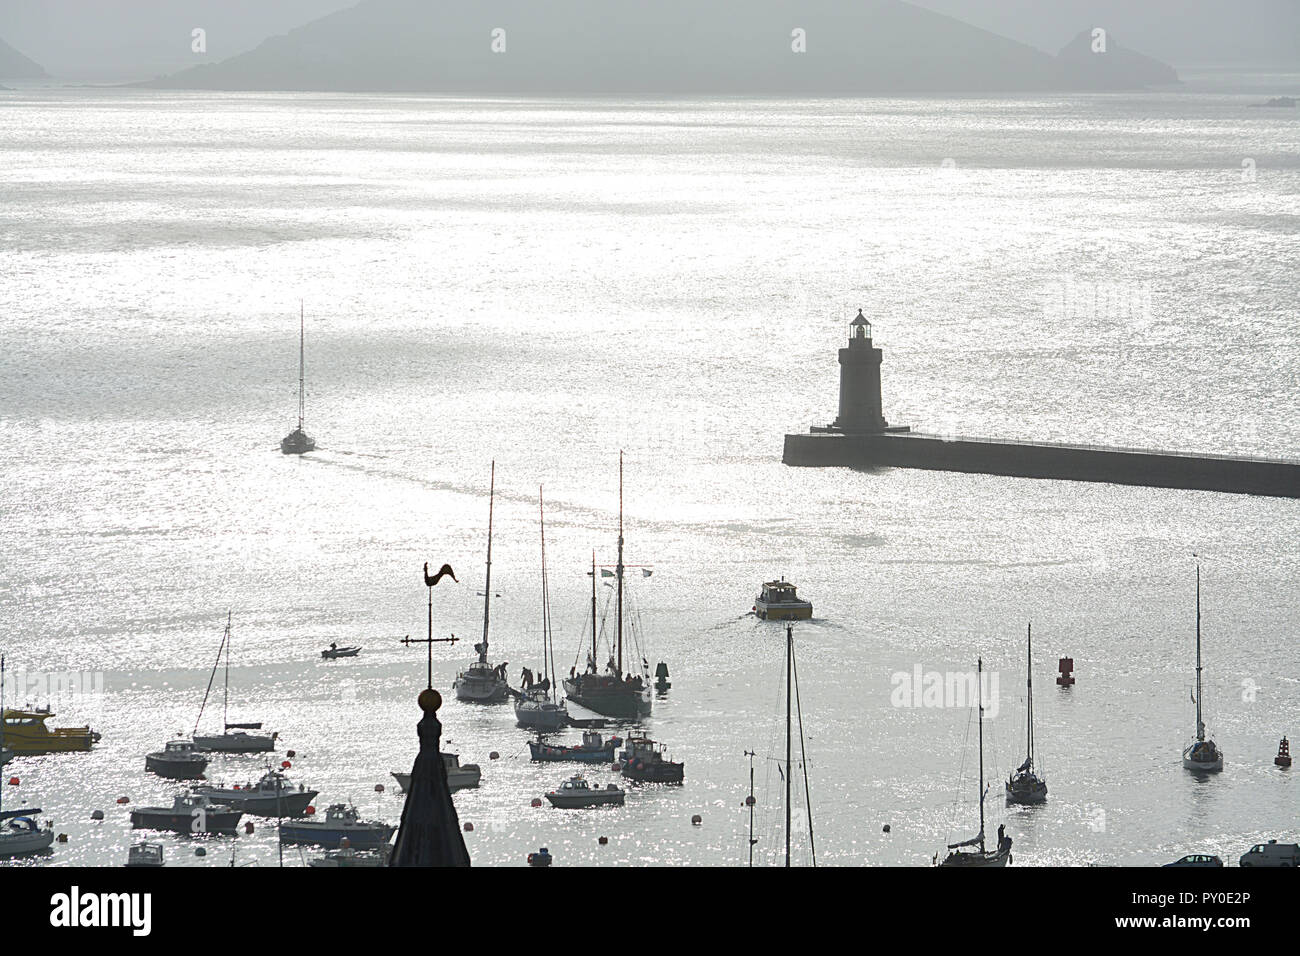 Guernsey Island, Chanel Island. View at harbour, silver ocean, lantern and ship. Stock Photo